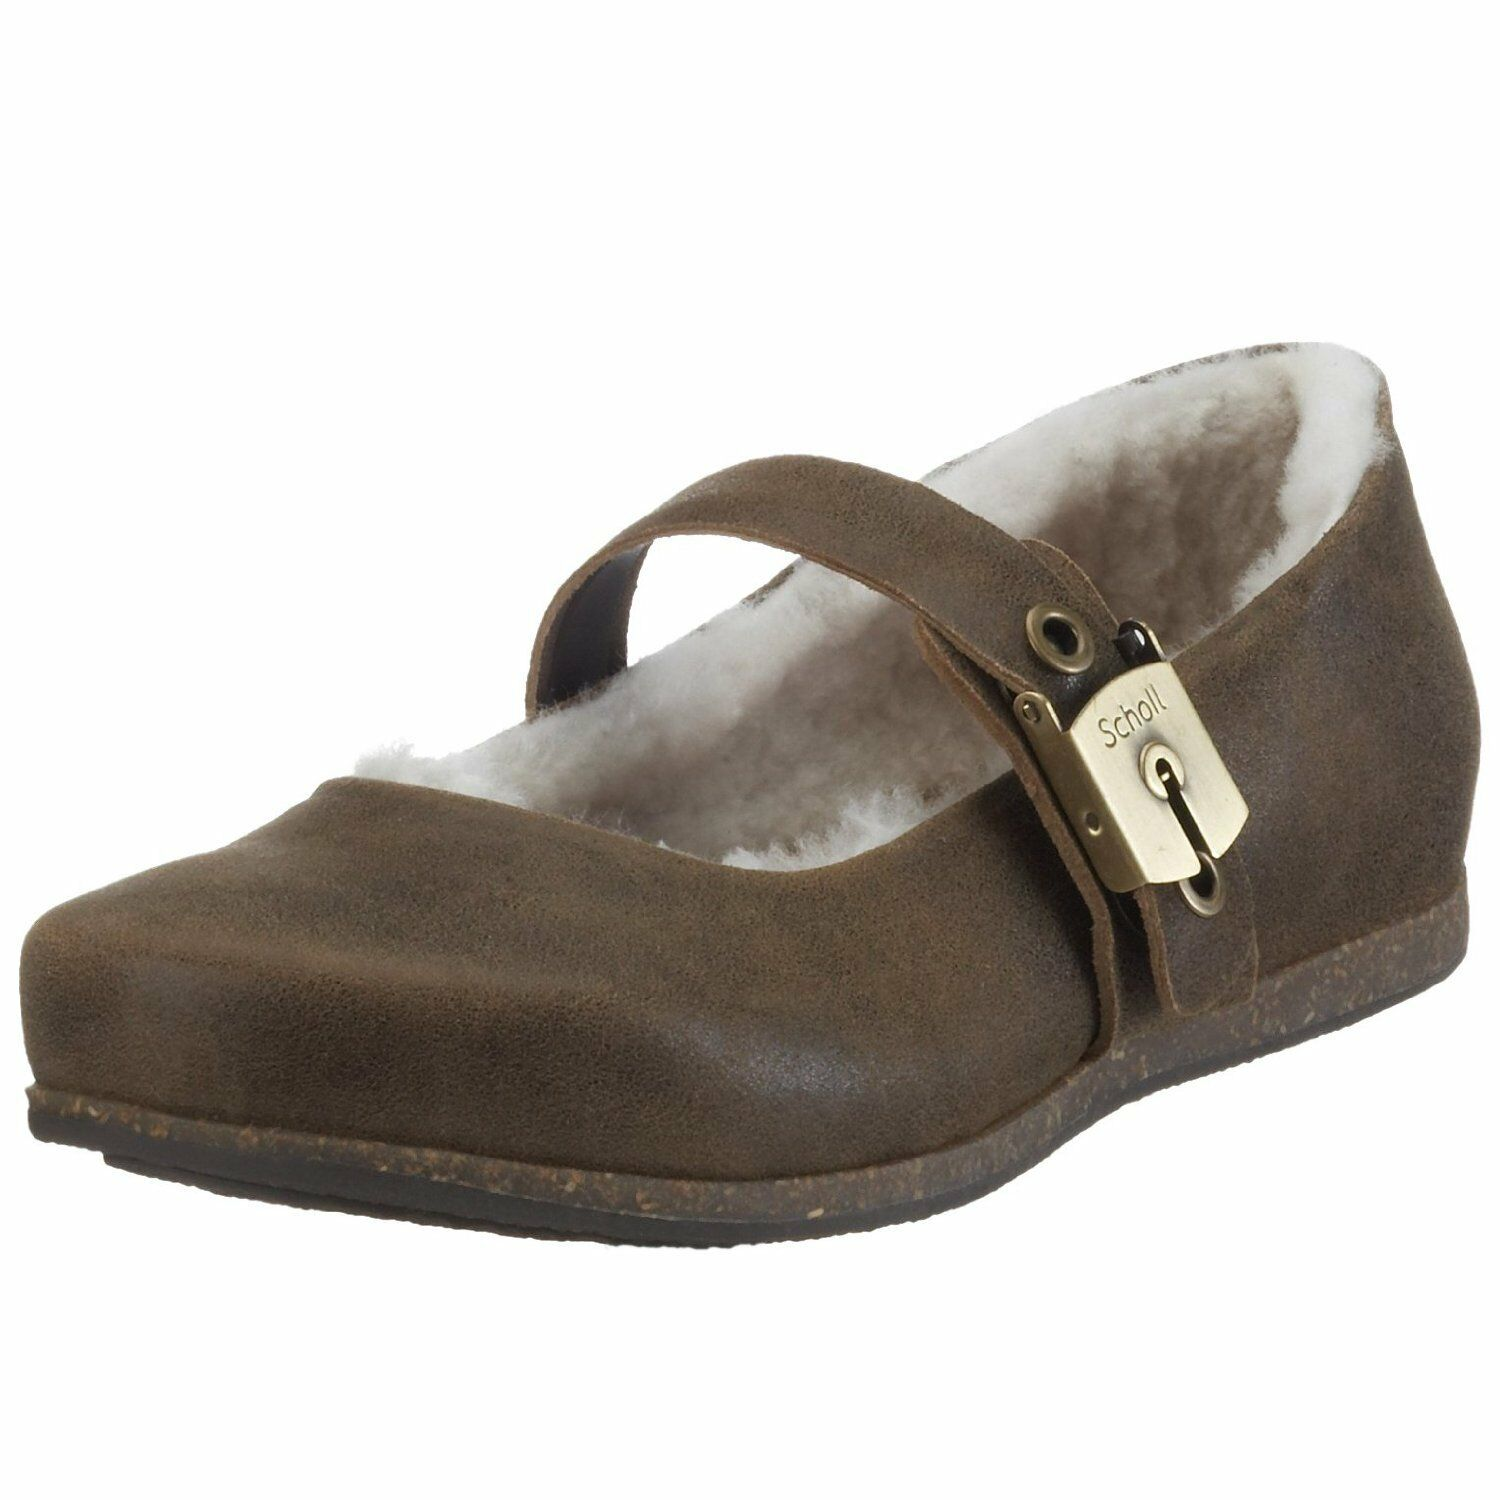 Scholl Aisha shoes Femme 41 Ballerines Fourrées Shearling Lambswool UK7 New